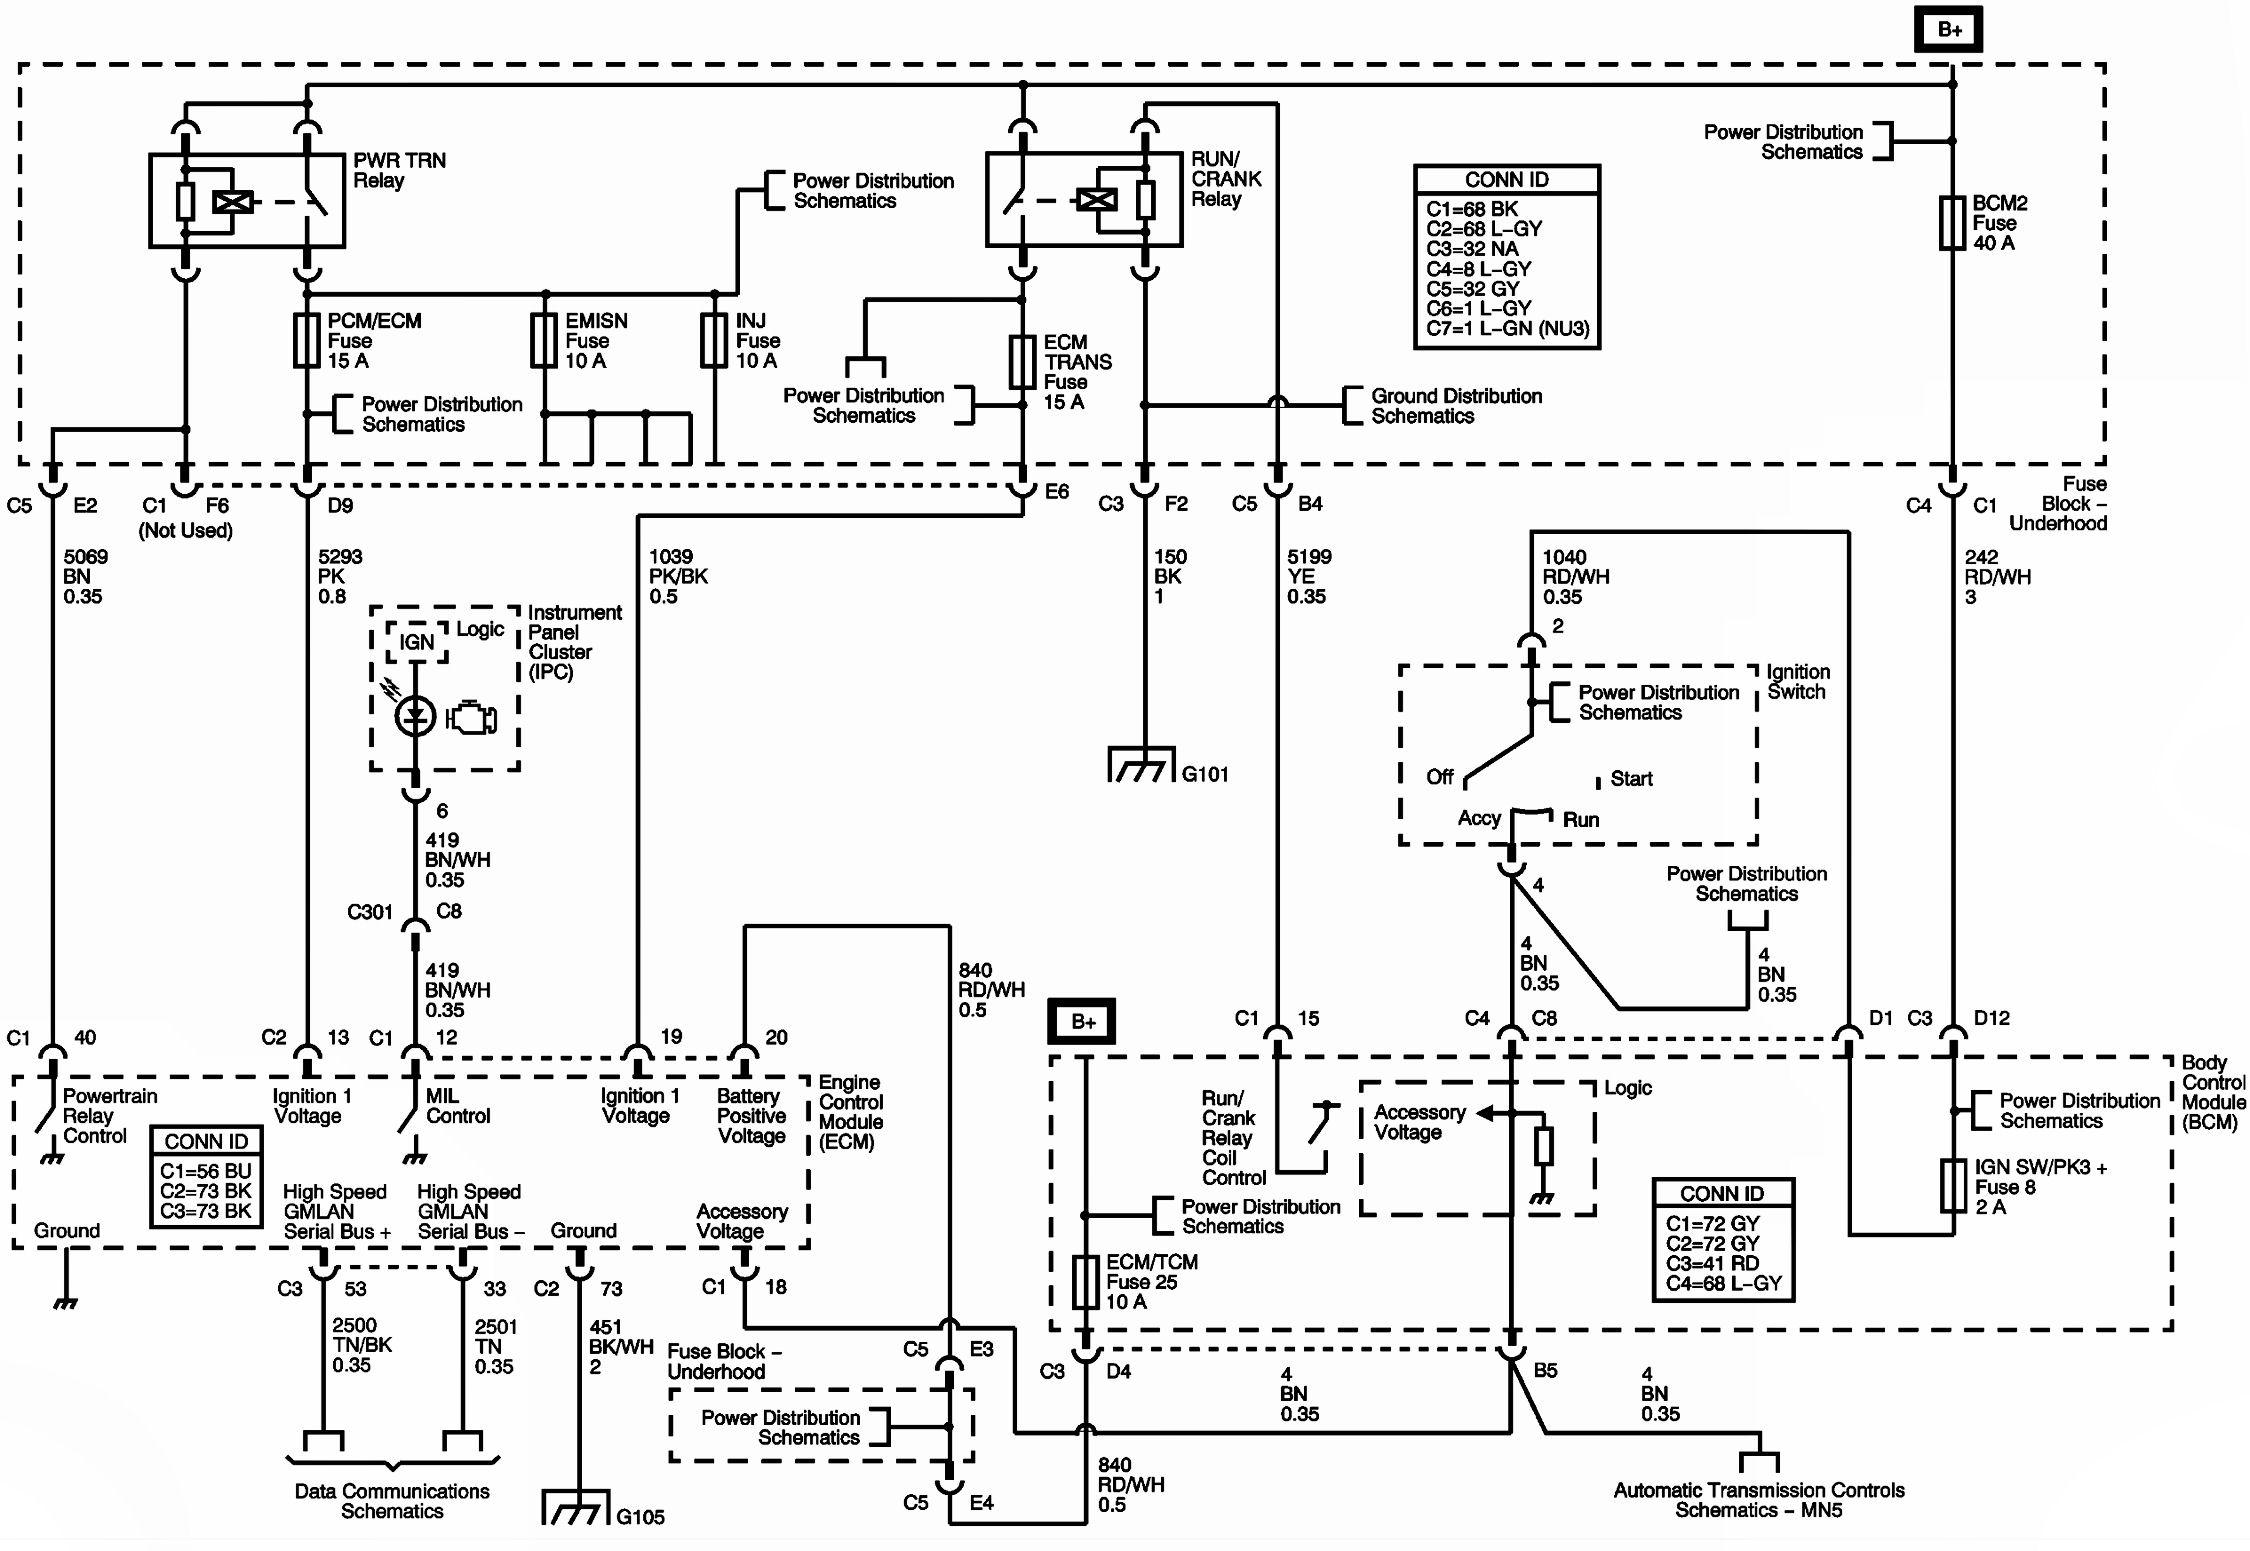 vs bcm wiring diagram 1989 bayliner capri accessory power wire from to ecm and tcm cobalt ss network